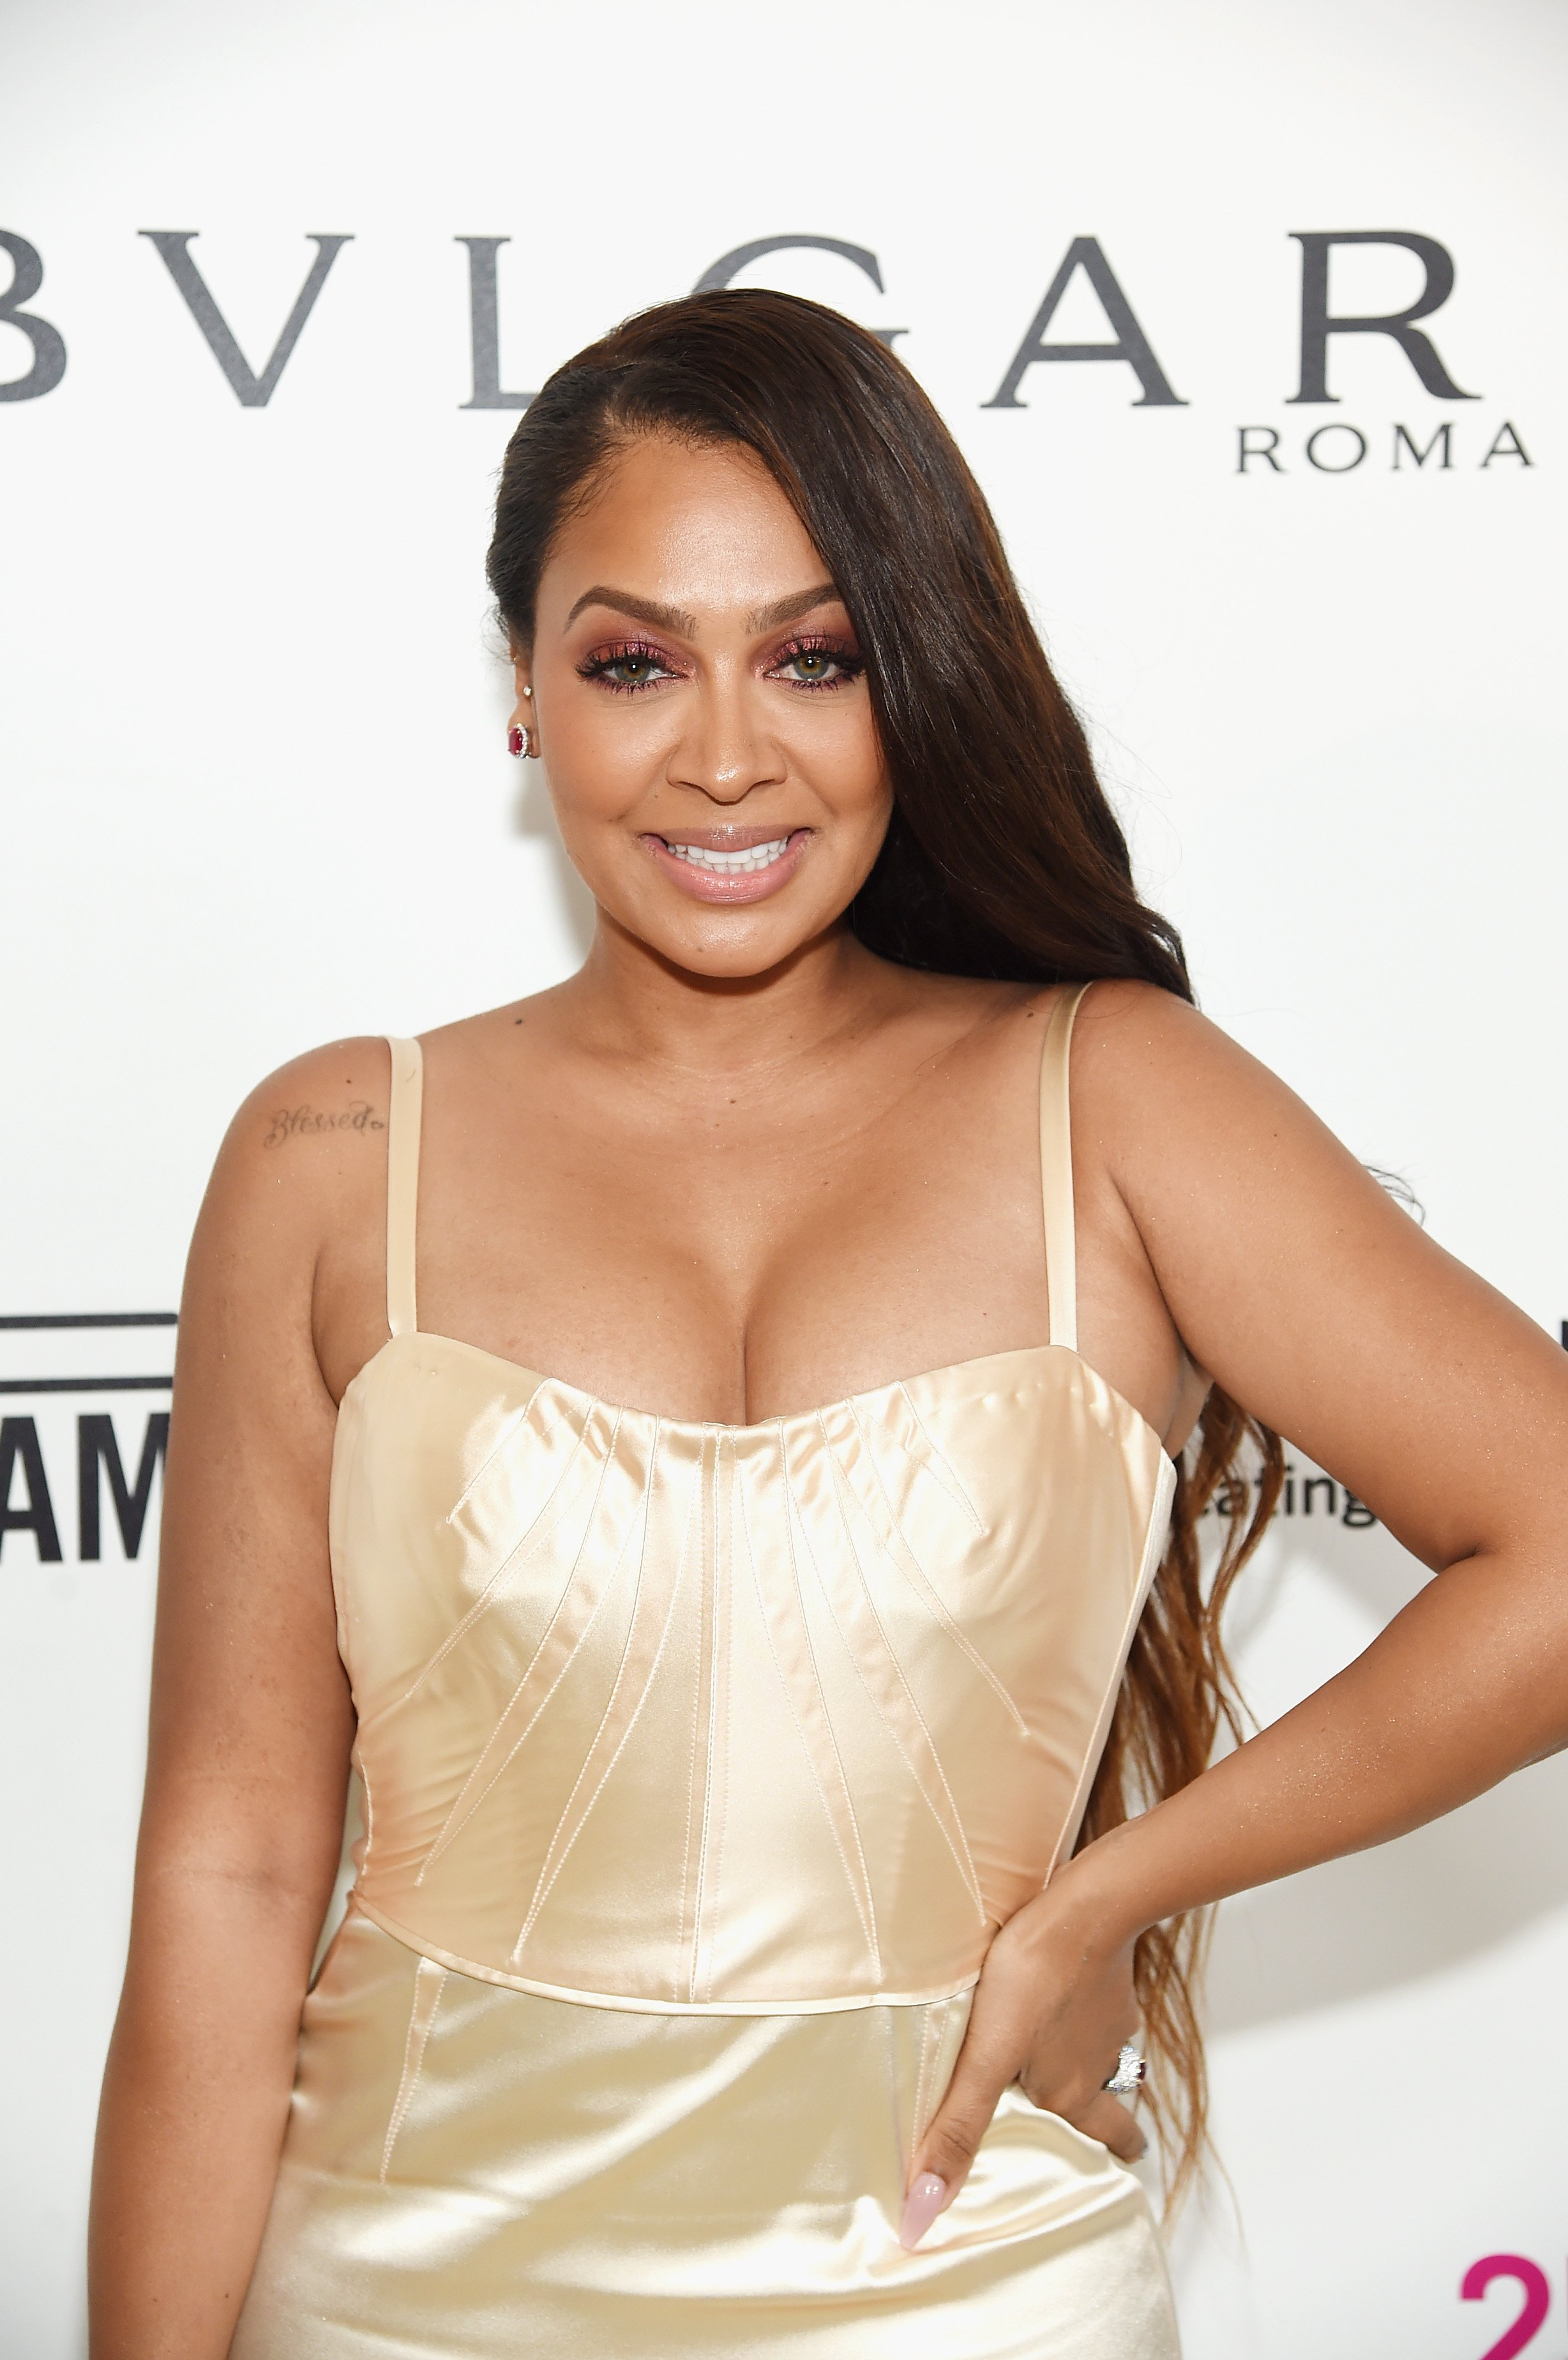 La La Anthony attends the 26th annual Elton John AIDS Foundation Academy Awards Viewing Party on March 4, 2018. | Source: Getty Images